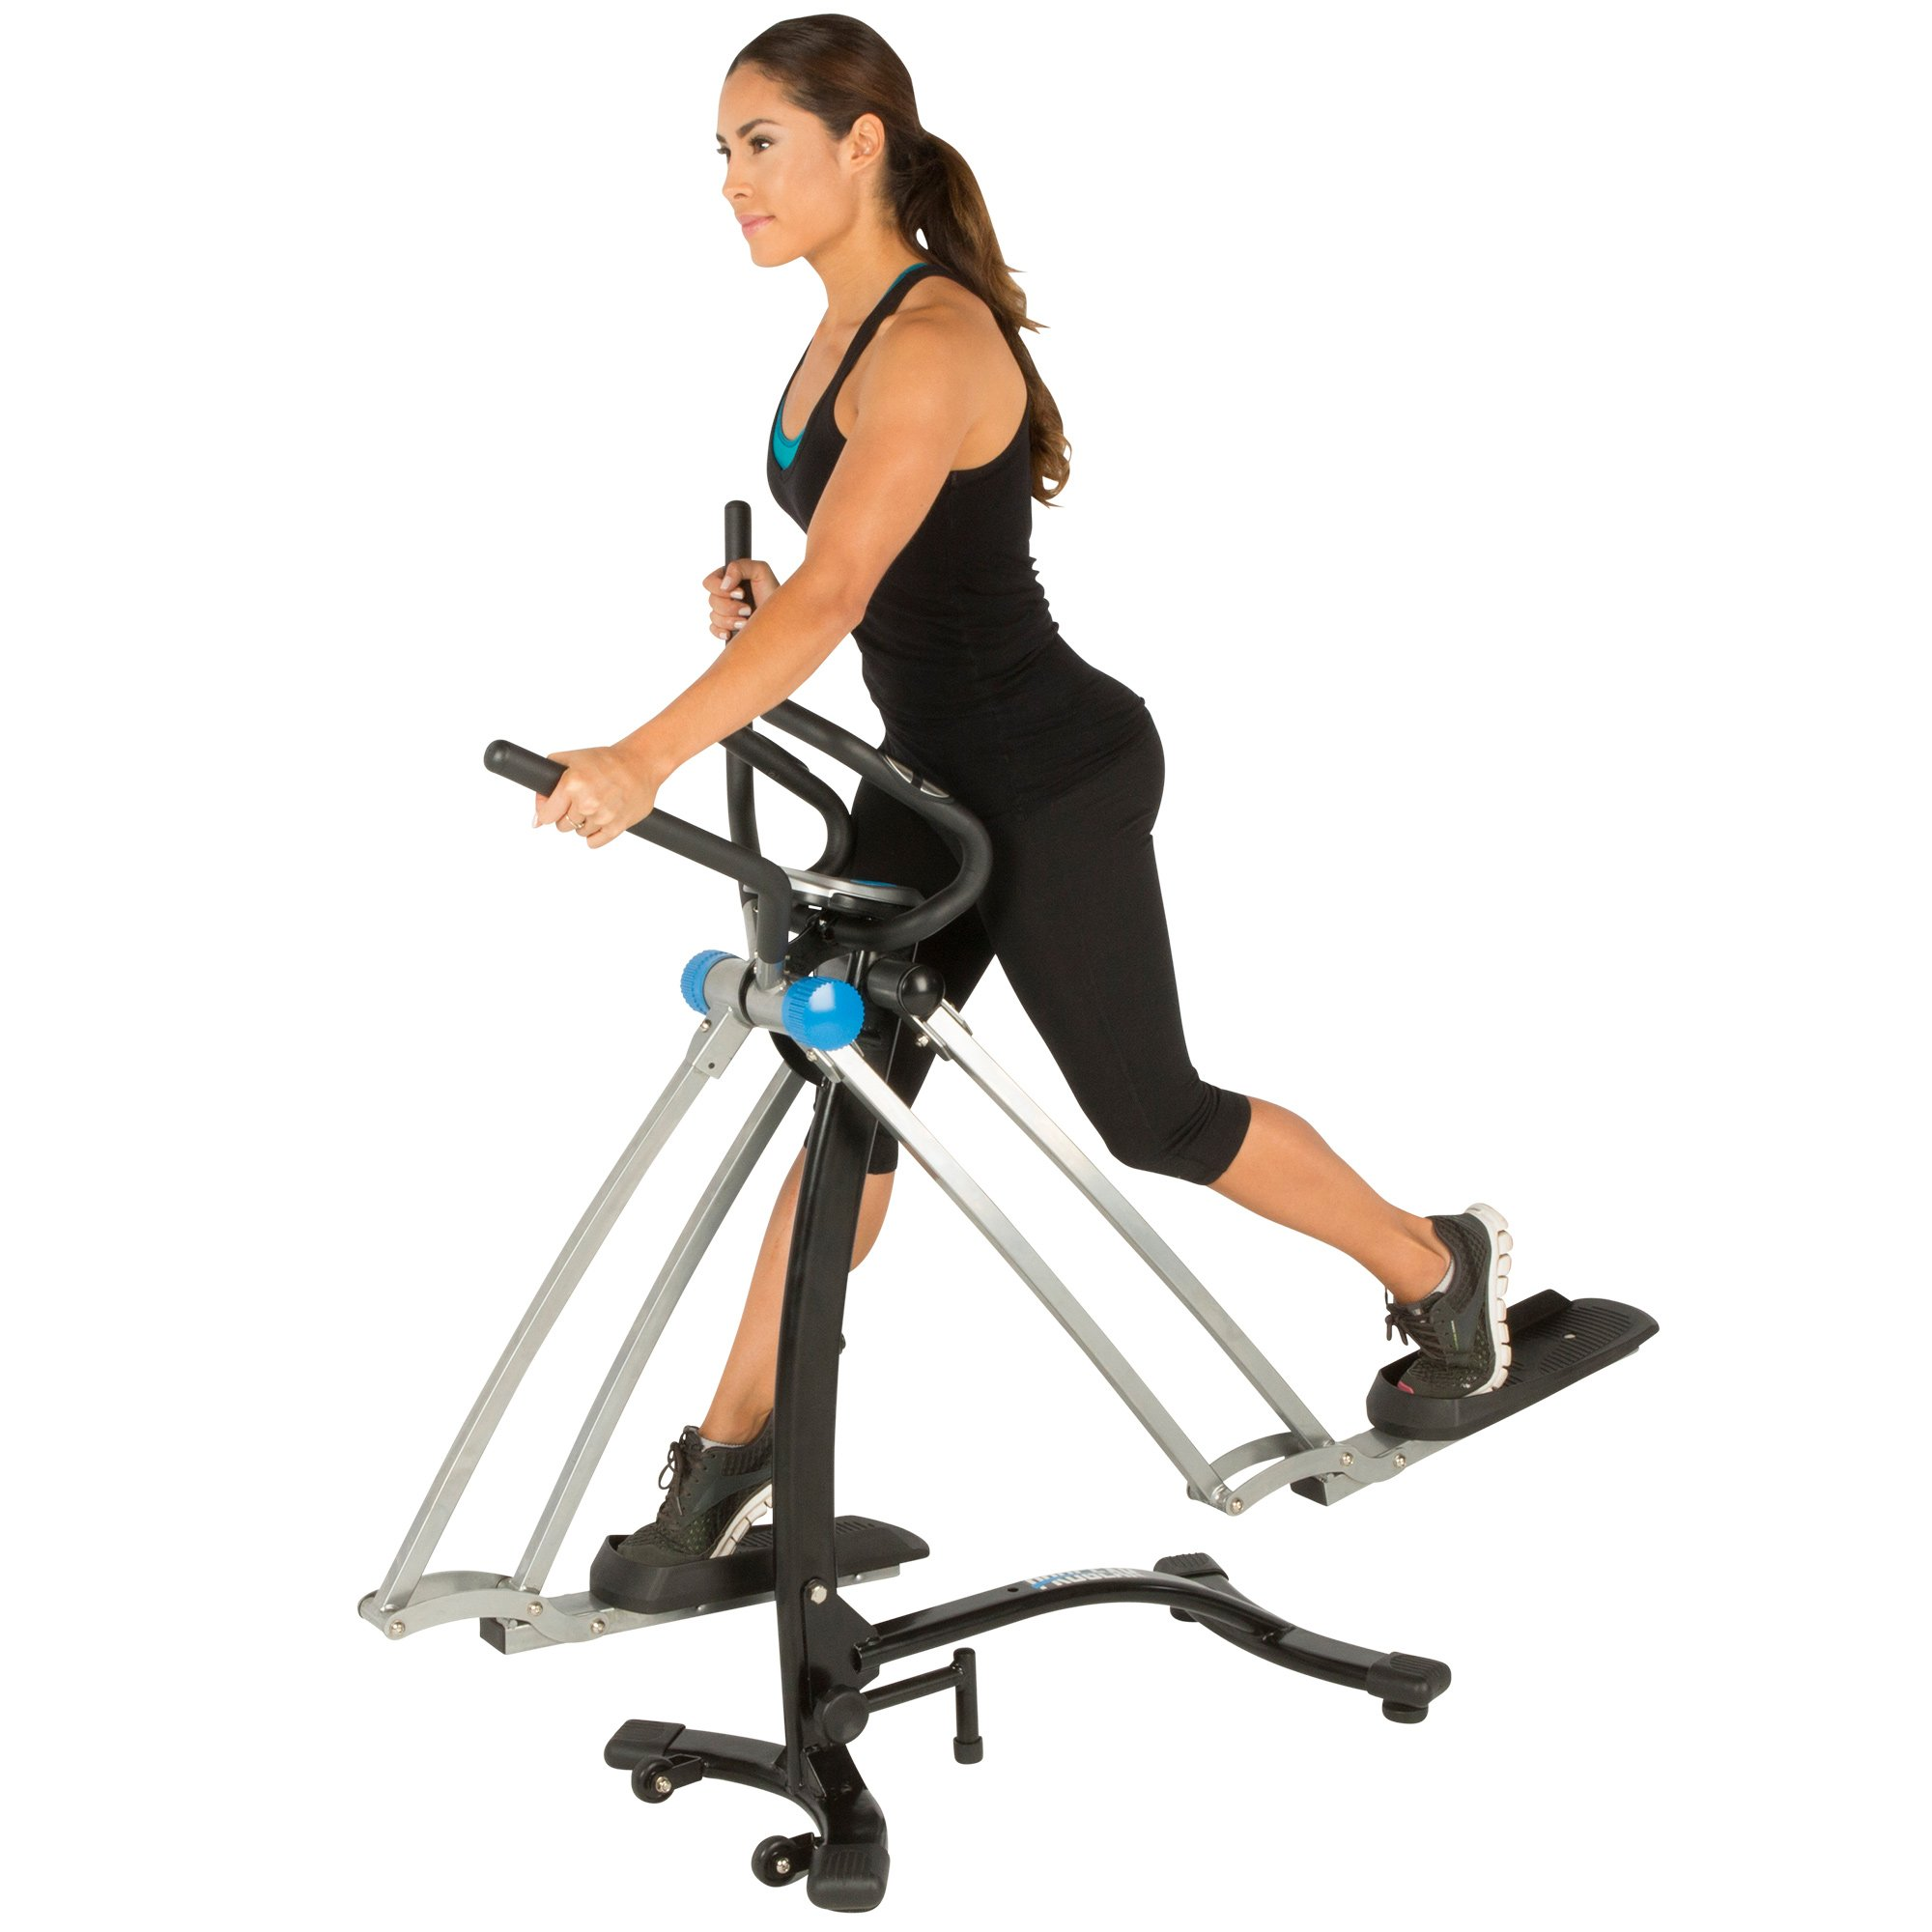 PROGEAR Dual Action 360 Multi Direction 36'' Stride Air Walker LS with Heart Pulse Sensors